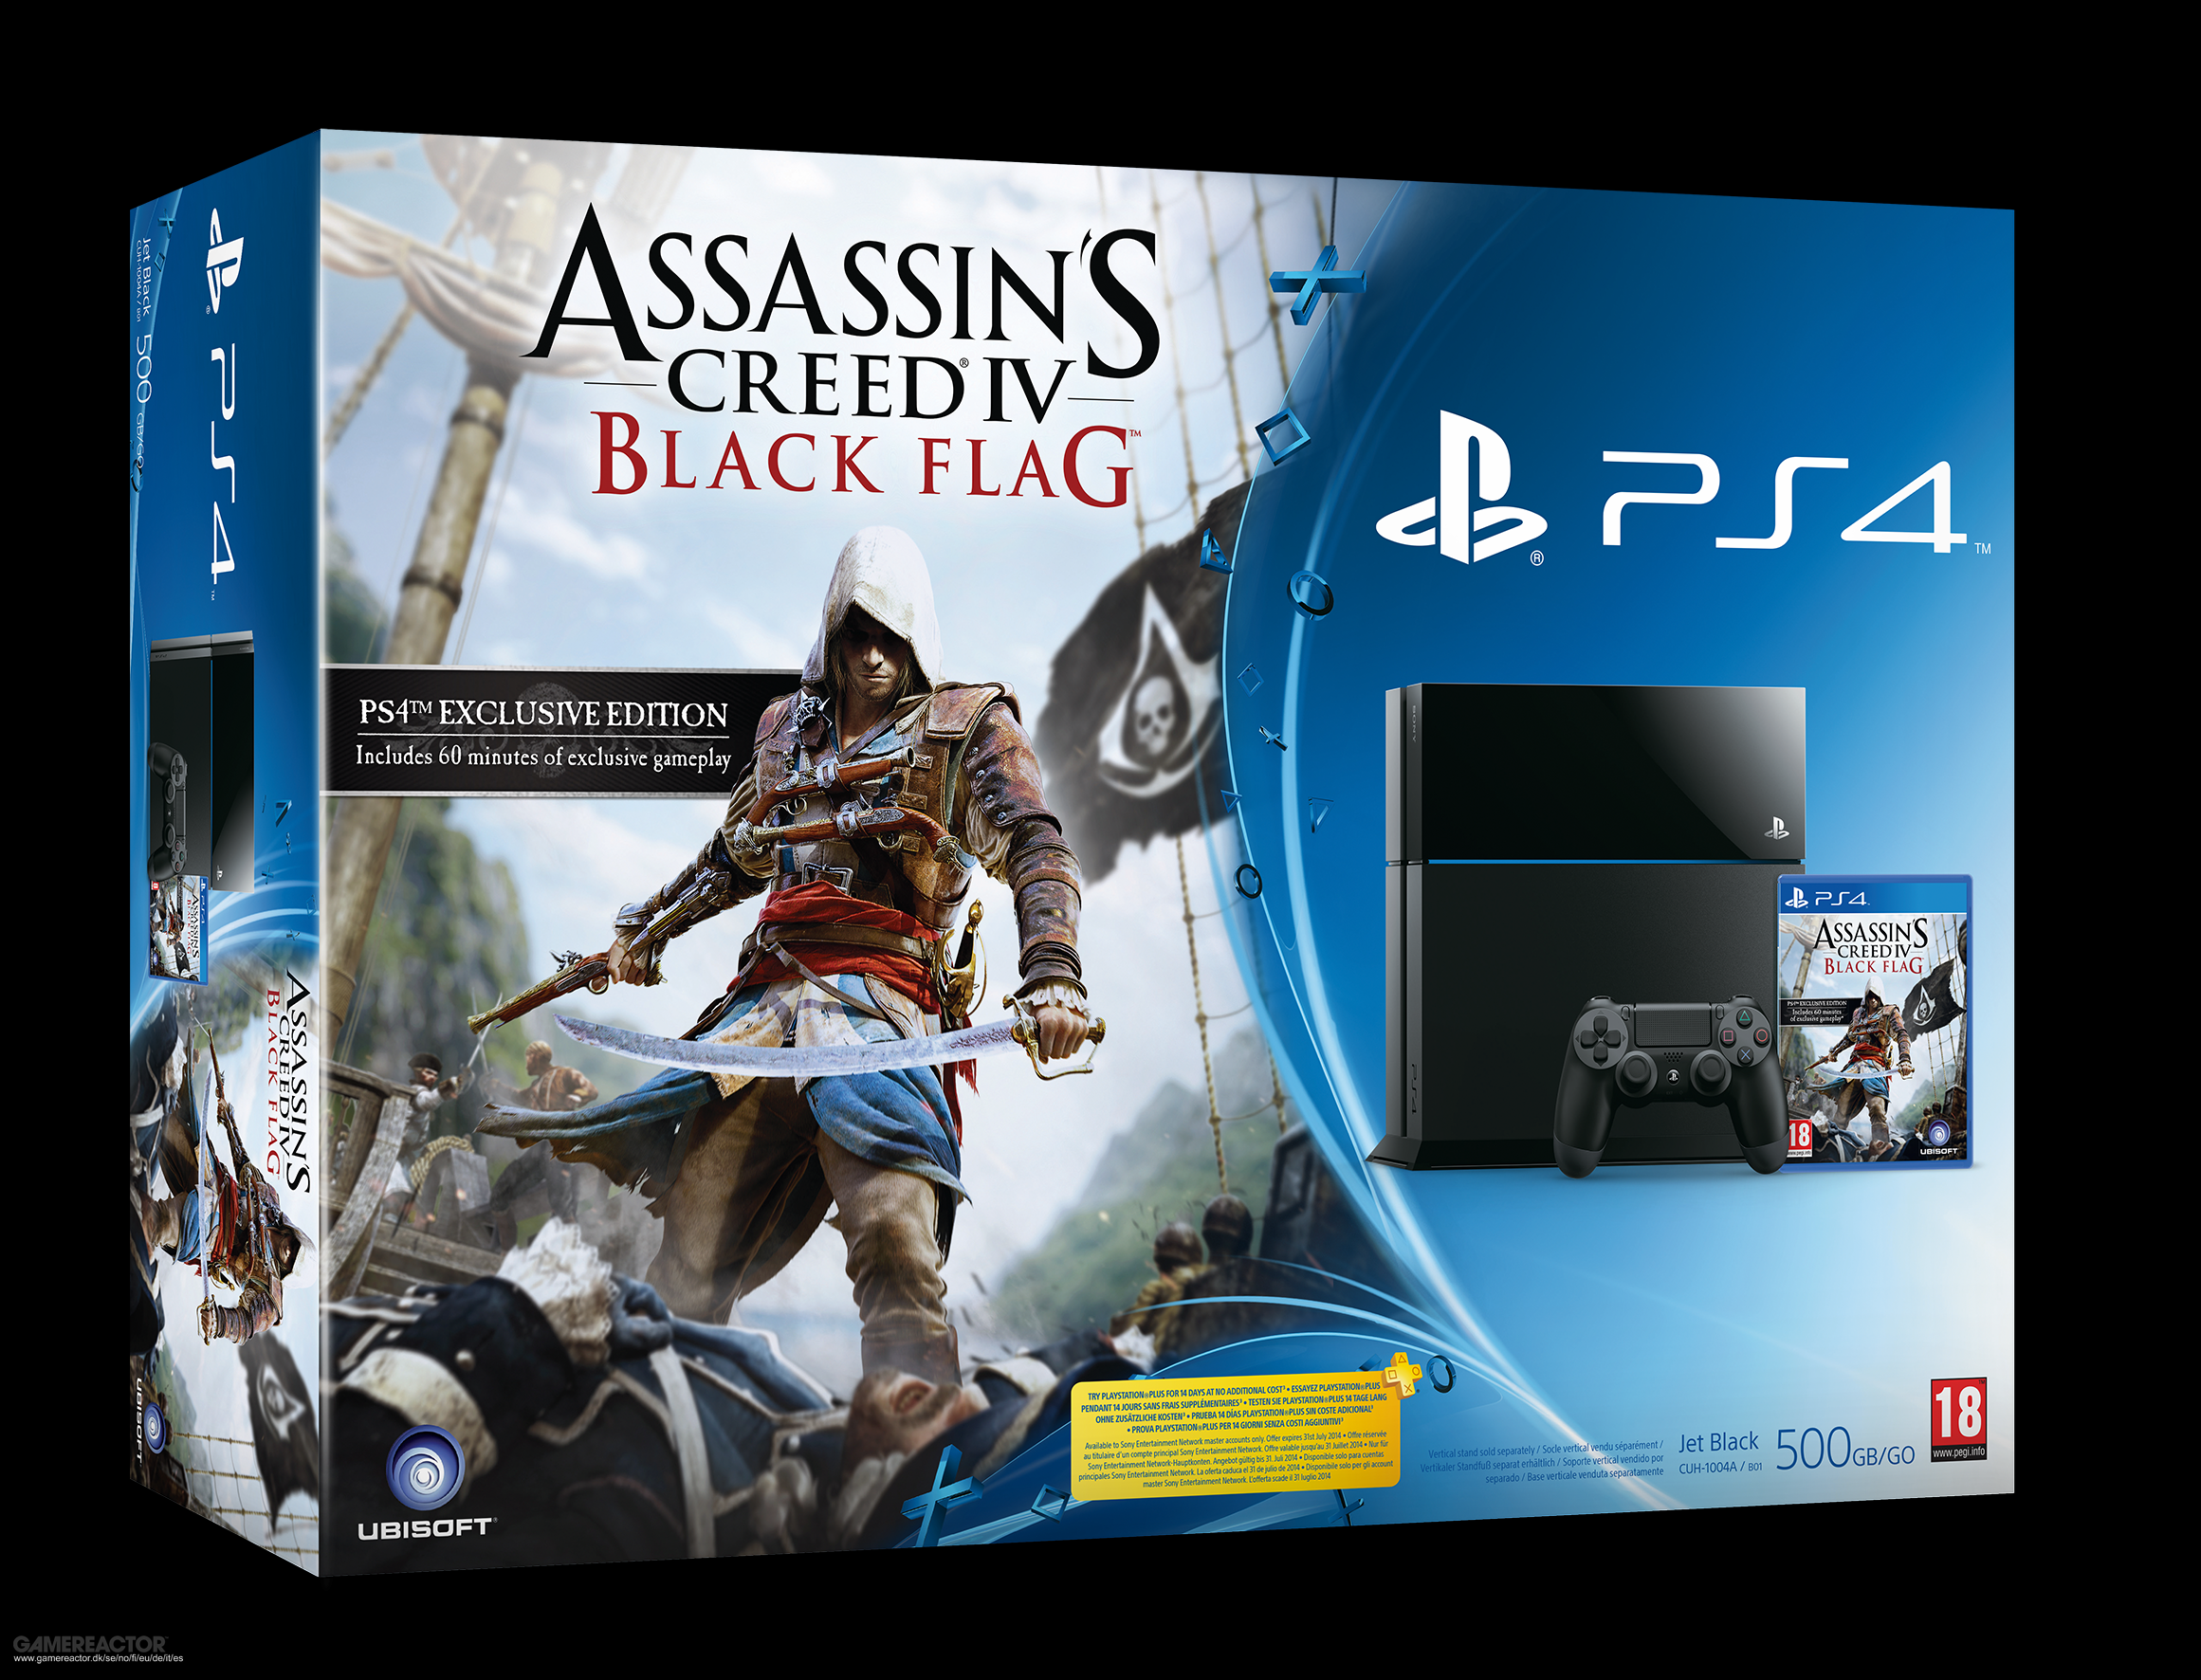 Assassin S Creed Iv Playstation 4 Bundle Assassin S Creed Iv